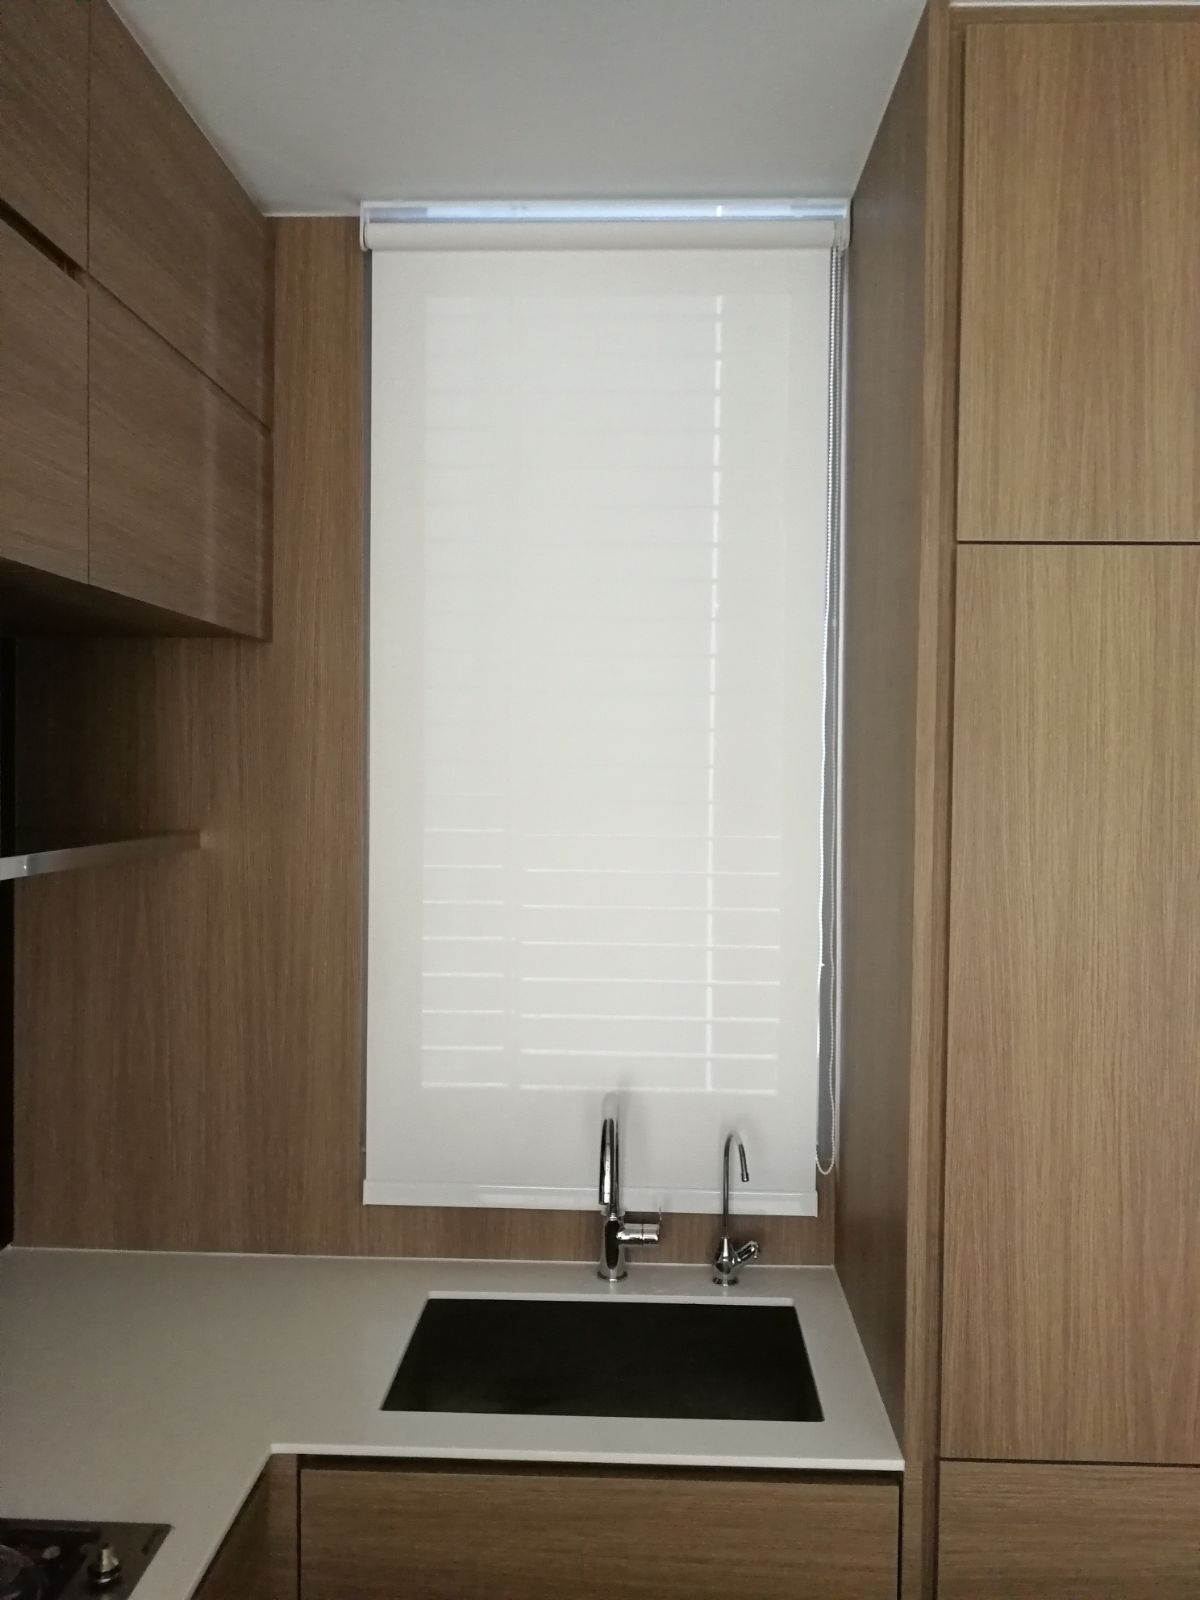 Condo Echleon Perforated Amp Blackout Roller Blinds